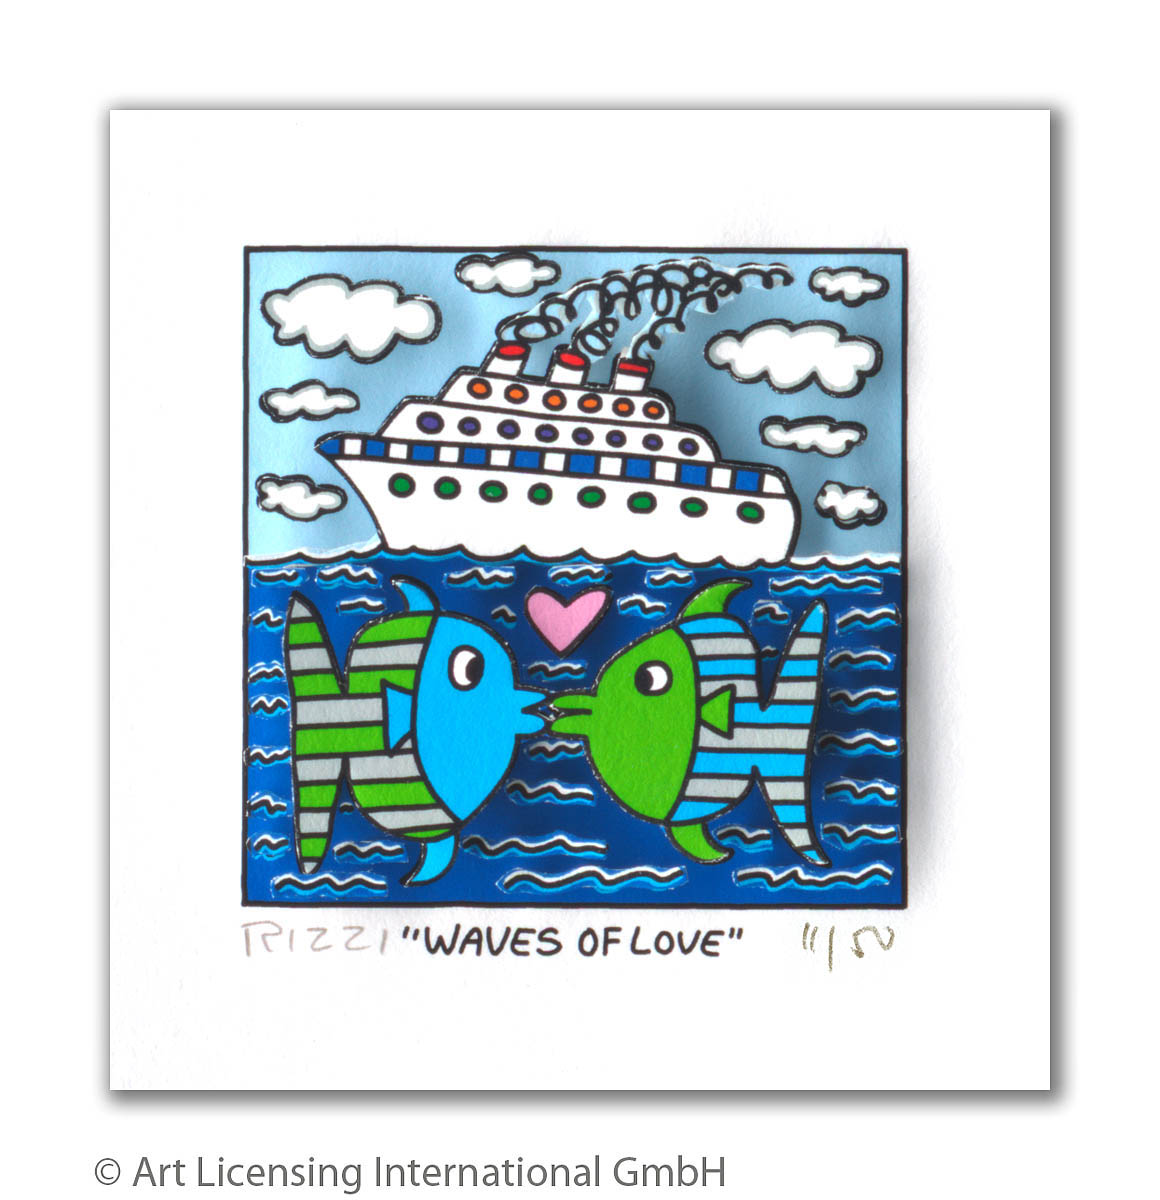 James Rizzi Waves of Love